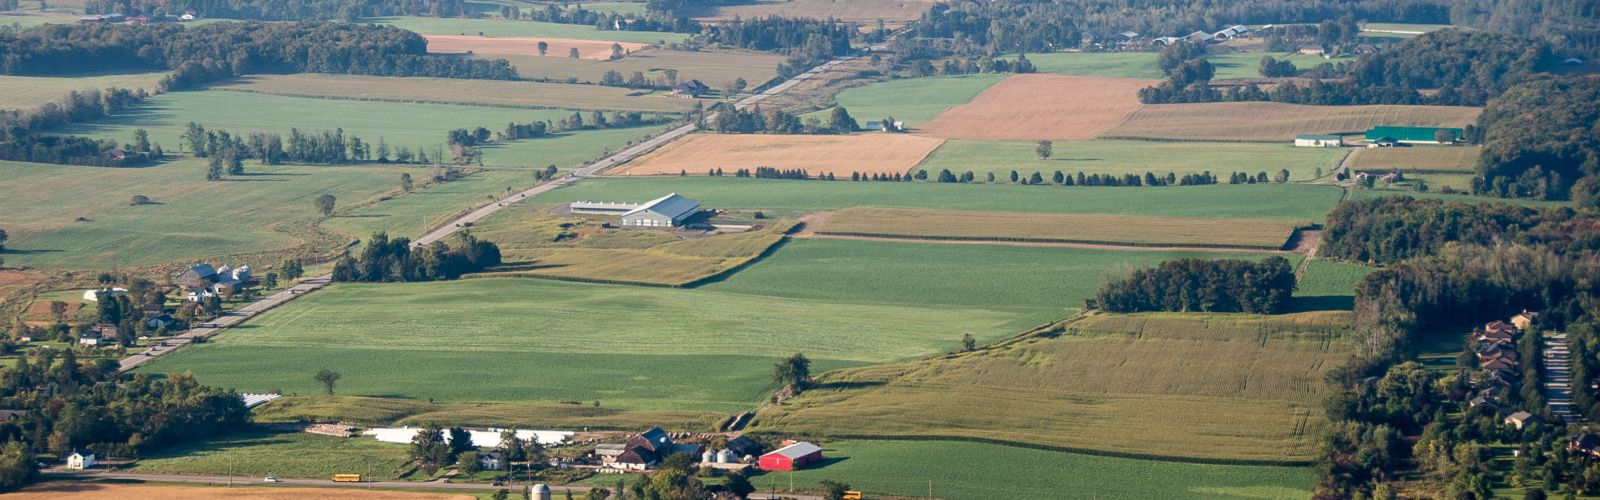 aerial photo of fields